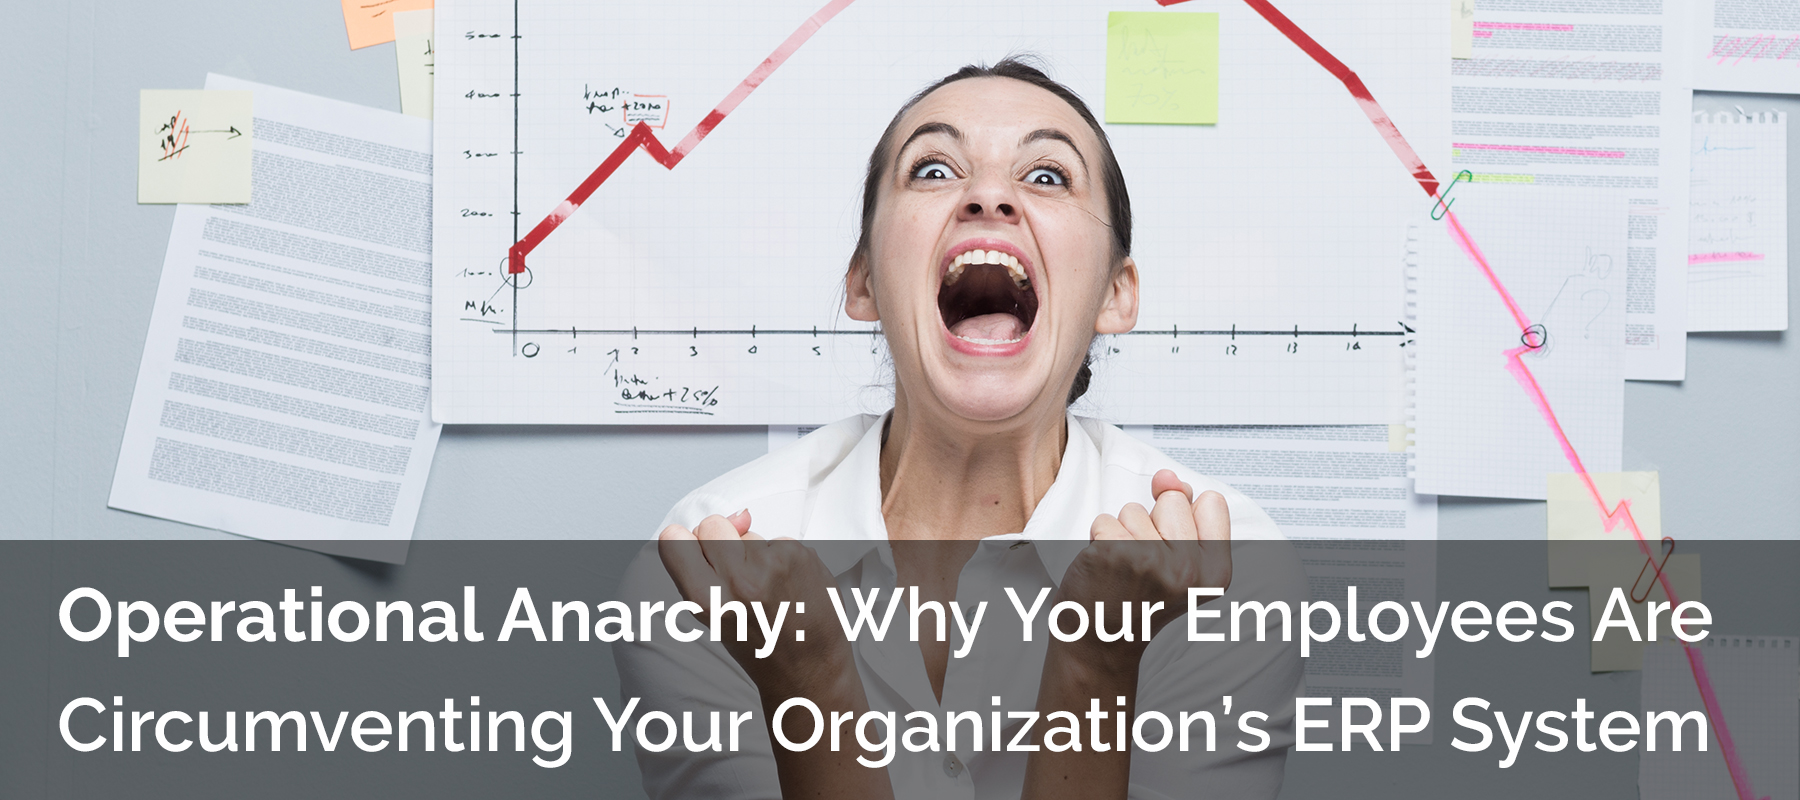 Operational Anarchy: Why Your Employees Are Circumventing Your Organization's ERP System